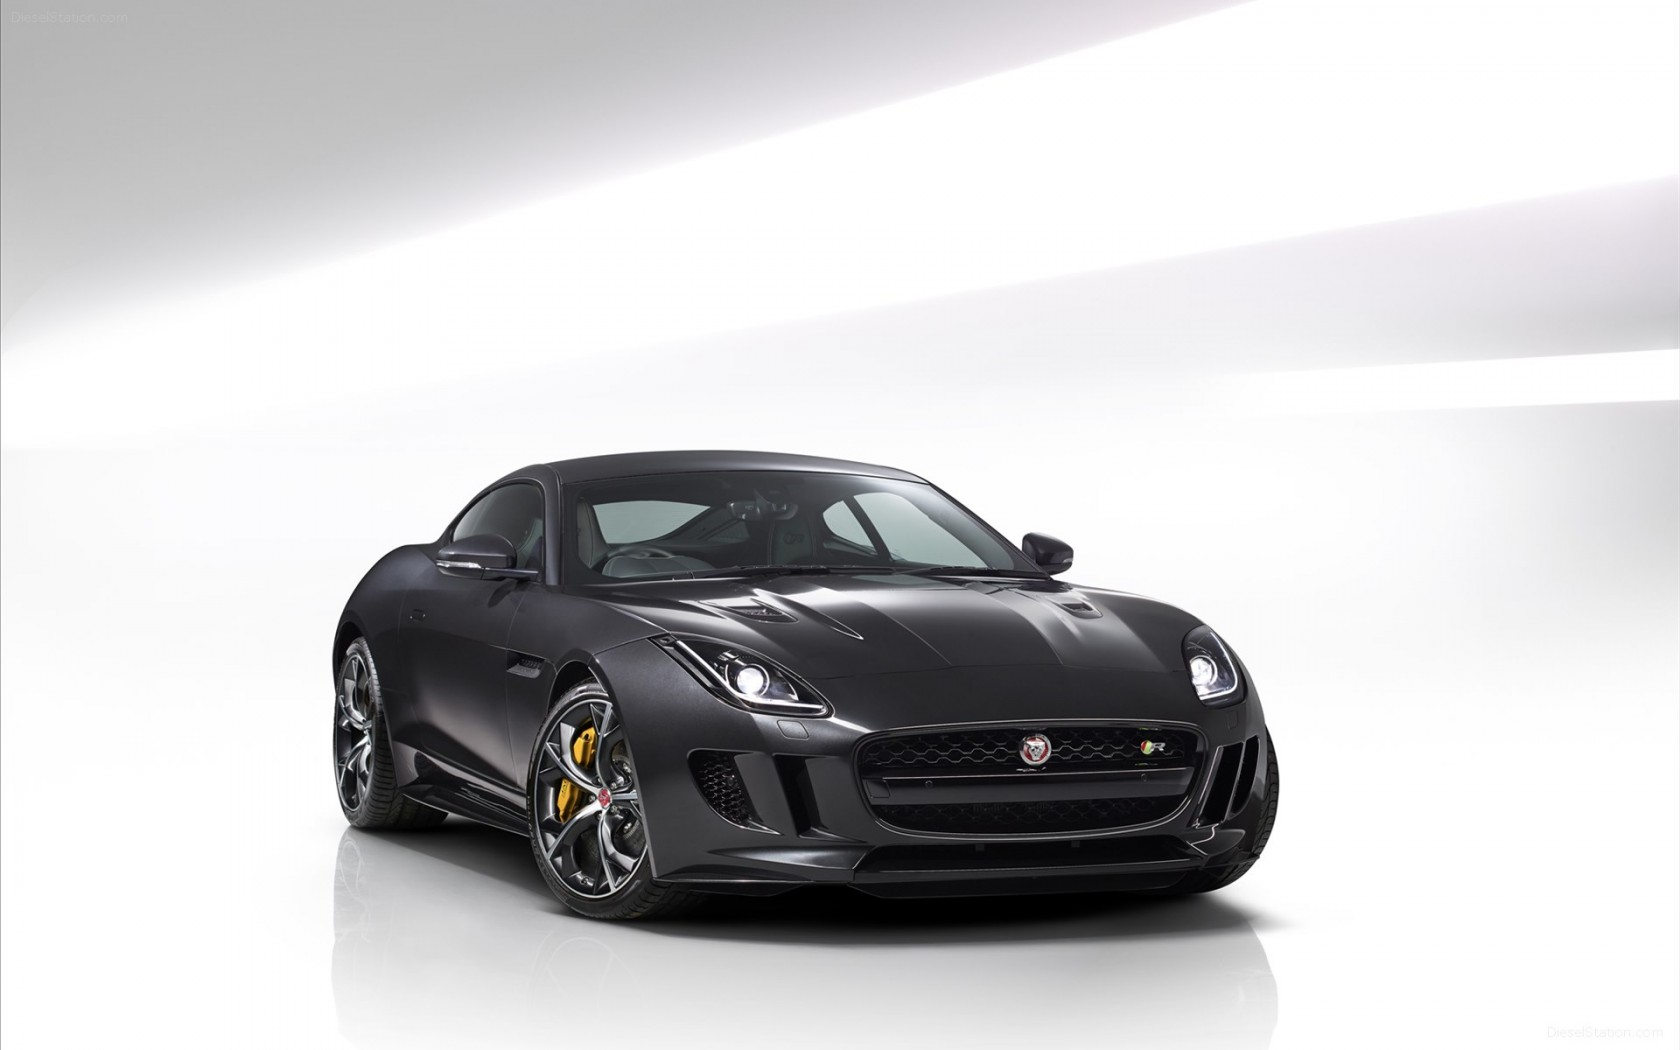 Jaguar f type coupe wallpaper - photo#16